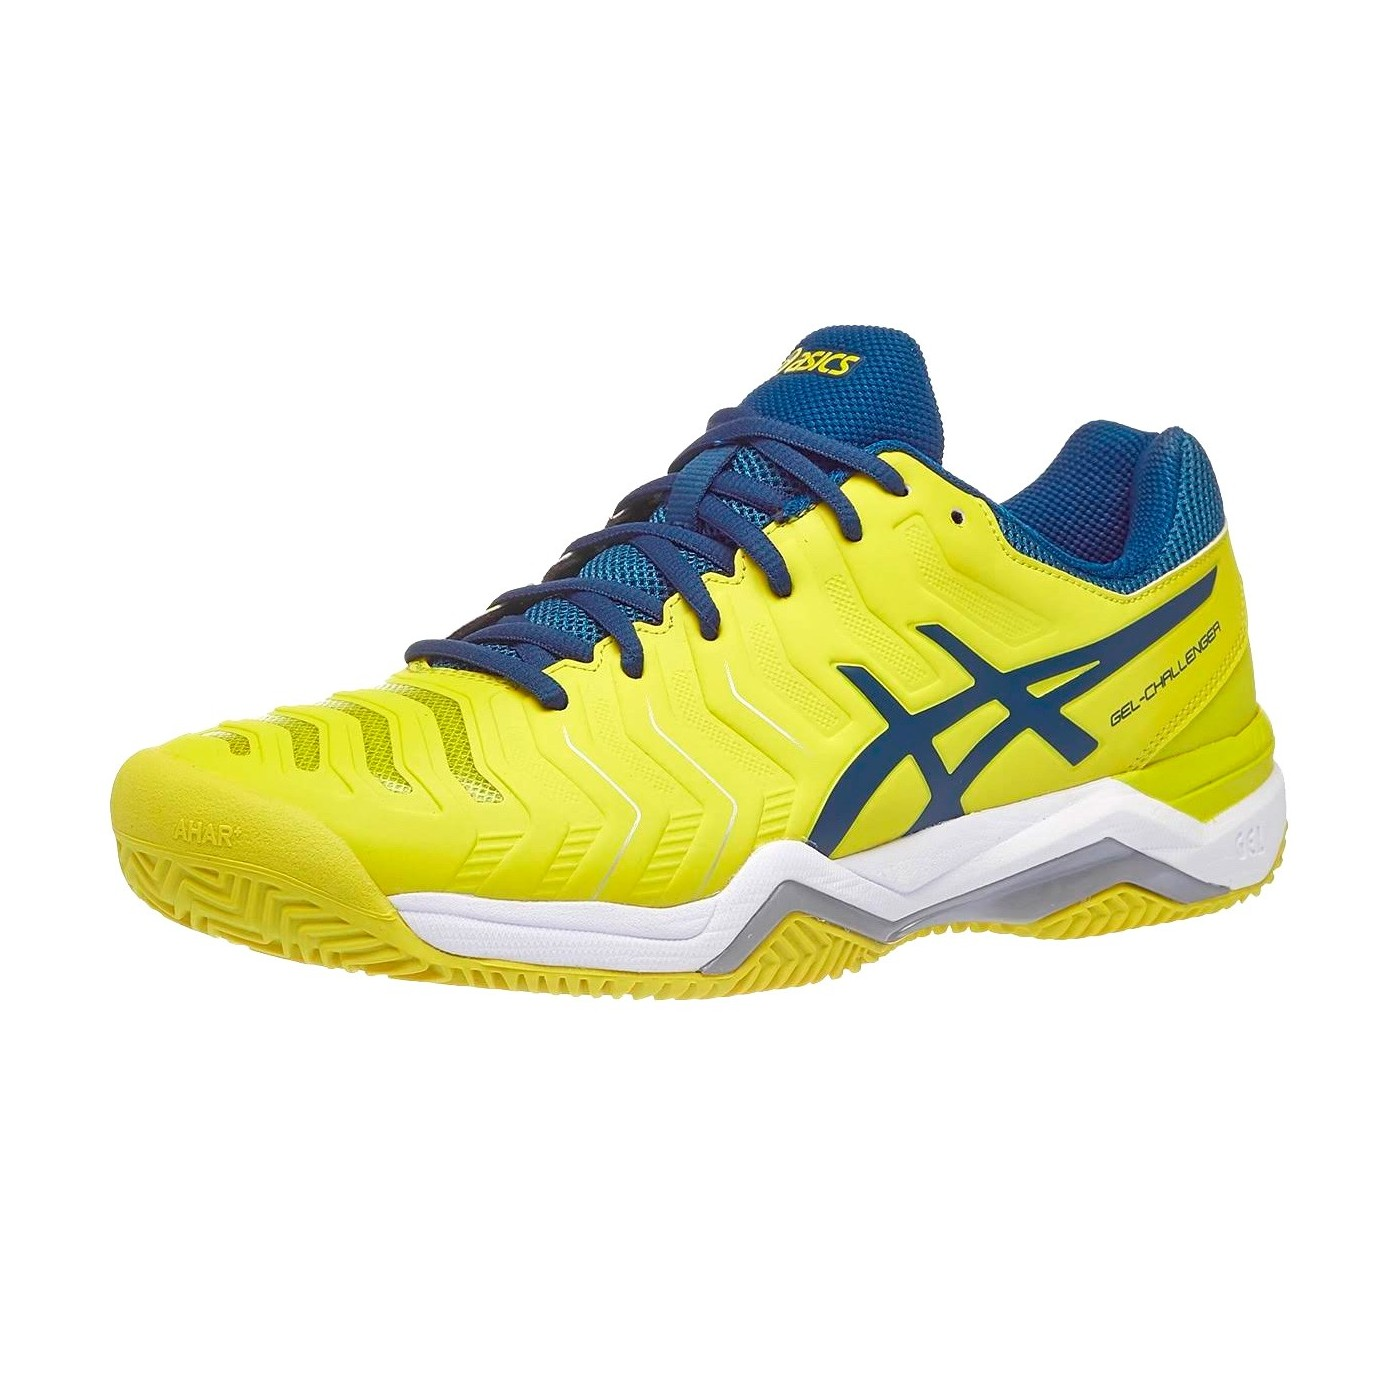 asics gel challenger 11 clay